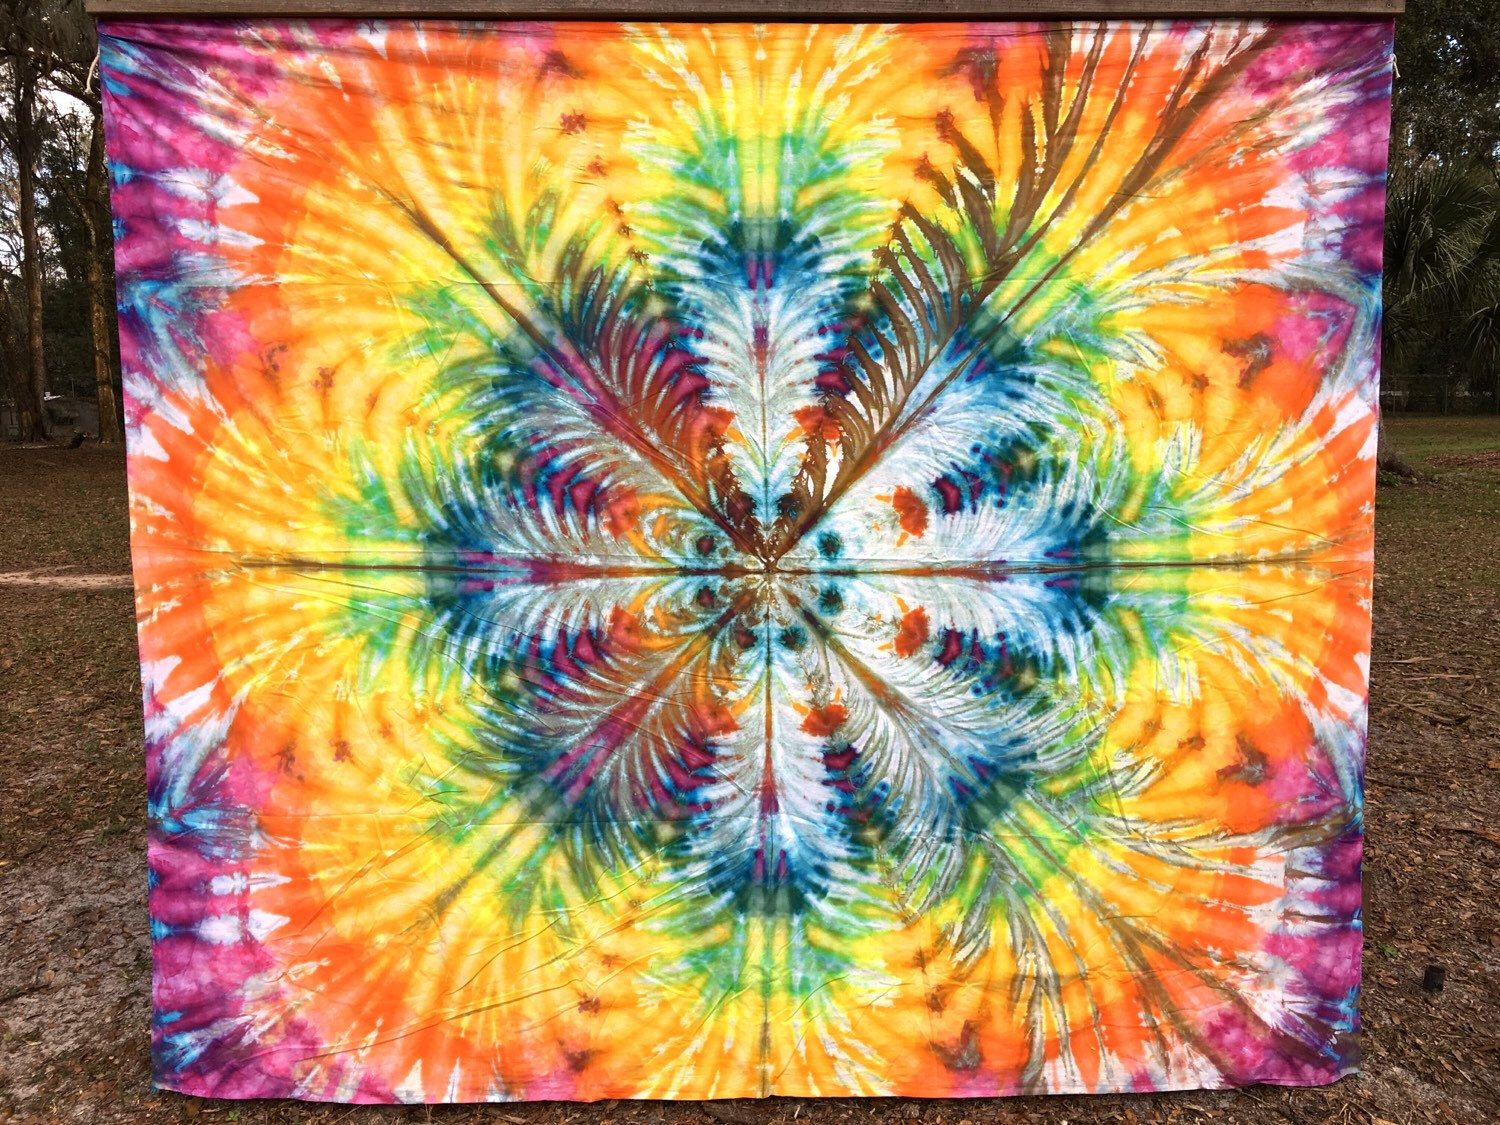 "Tie Dyed Tapestry Handmade Hippie Flower Blossom 85""x100"" Backdrop by AllBottledUpTieDyes on Etsy https://www.etsy.com/listing/259786237/tie-dyed-tapestry-handmade-hippie-flower"